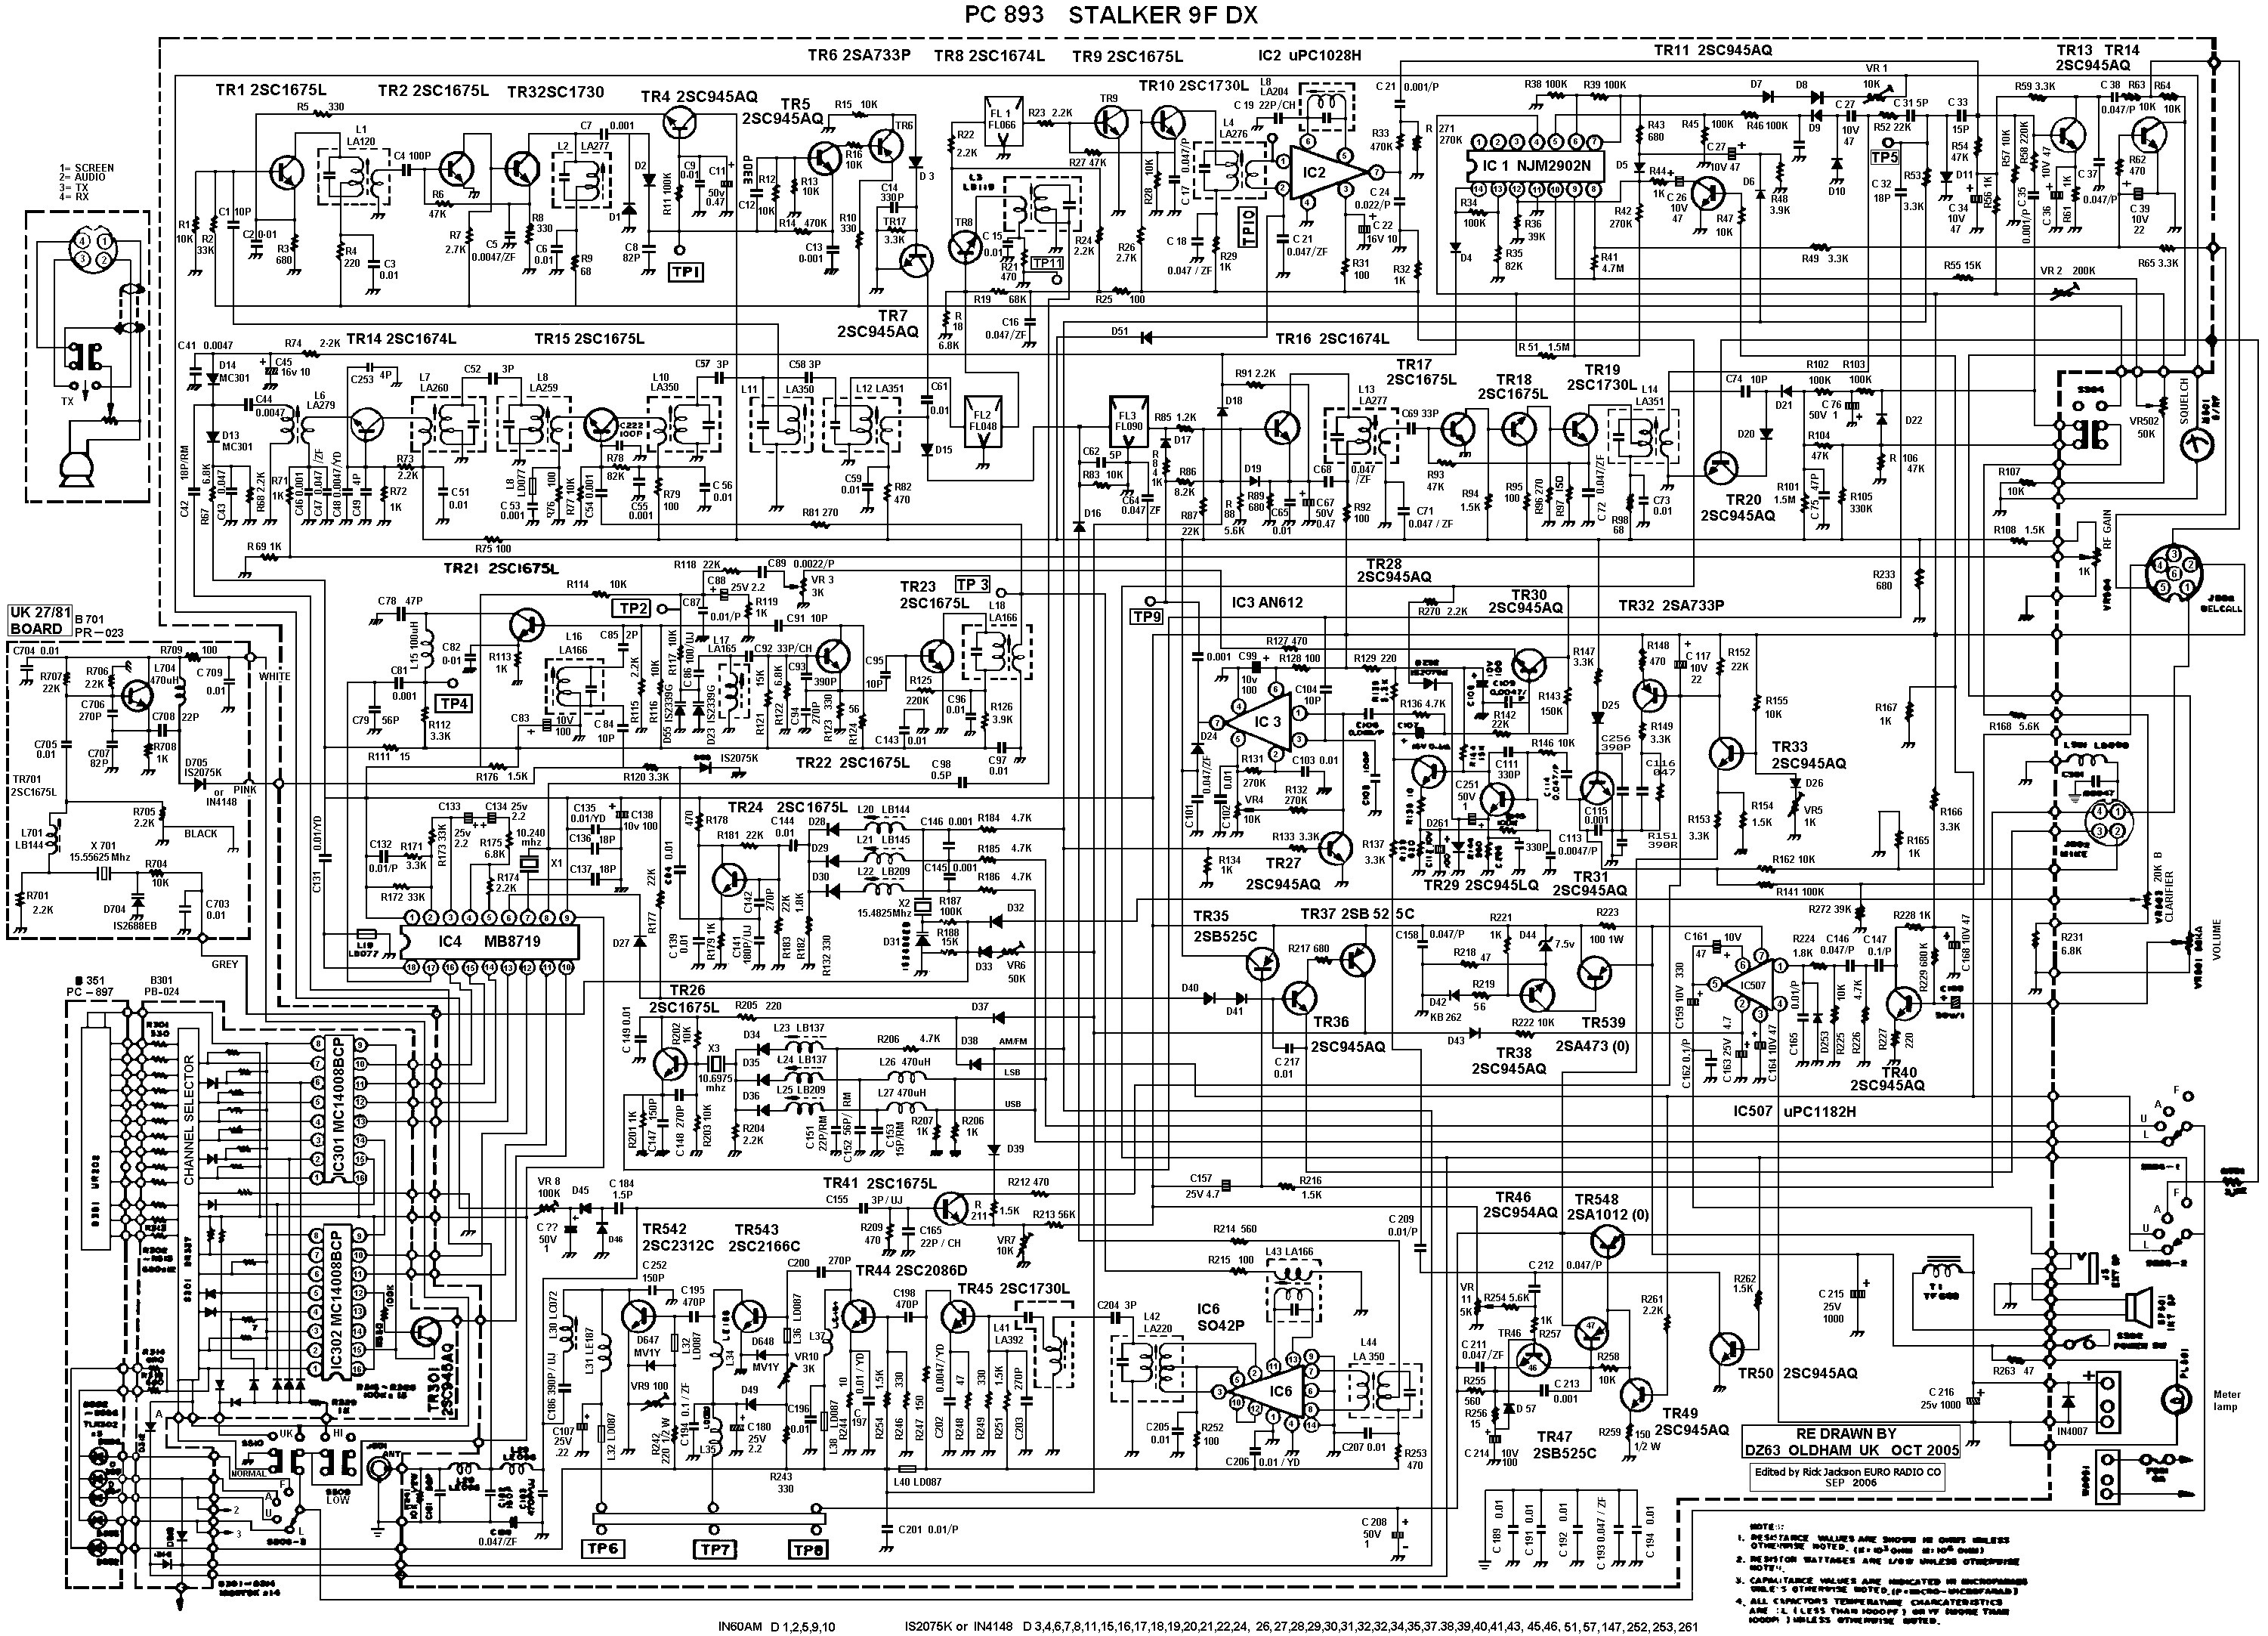 Can A Motherboard Intel That Is Short Circuited Damage Cpu Quora Diagrams Deeper Understanding Of The Parts Circuit Diagram Much More Complex You Have Cmos Chips Audio Codecs Nics Vrms Chokes Memory North Bridgeor What Ever